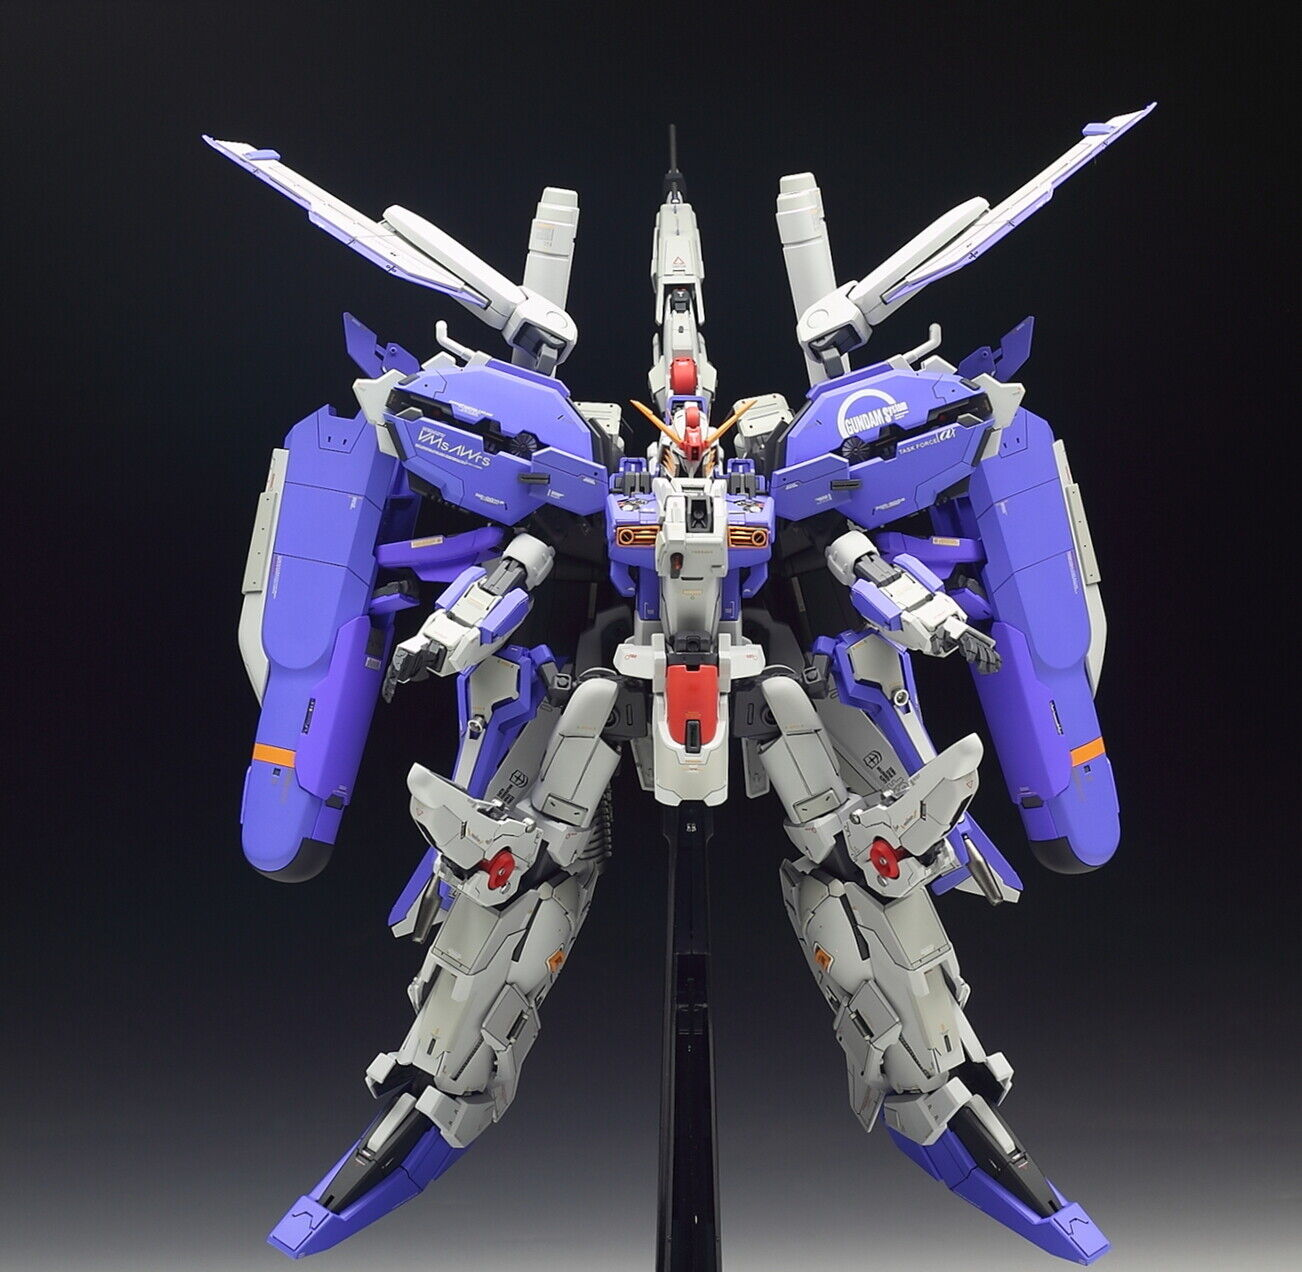 THE51 Gundam 1 100 MG EXTRA-FIT for MSA-0011 Ex-S Resin Conversion Original Kit